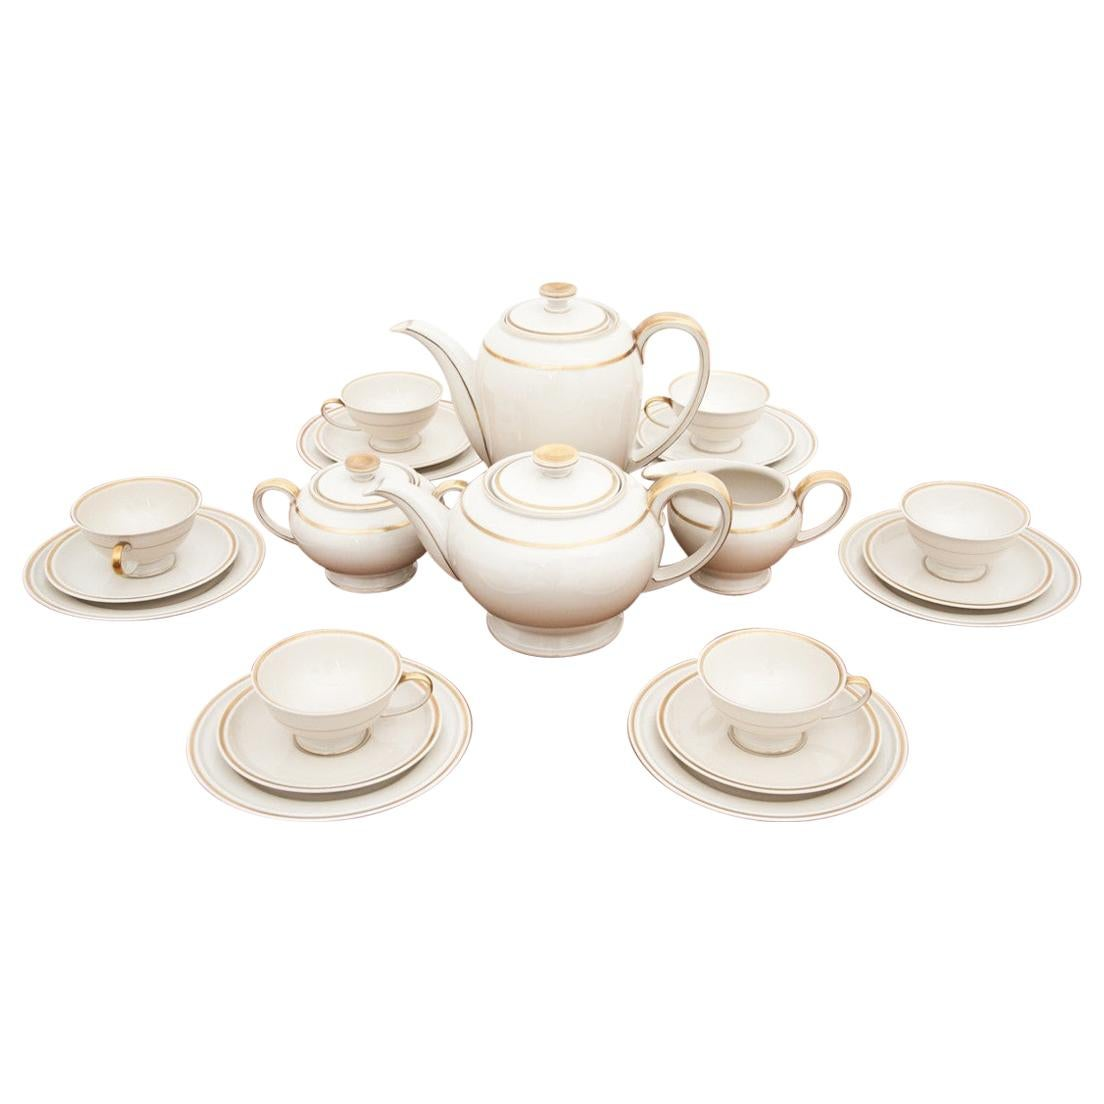 Rosenthal Tea Service for 6 People